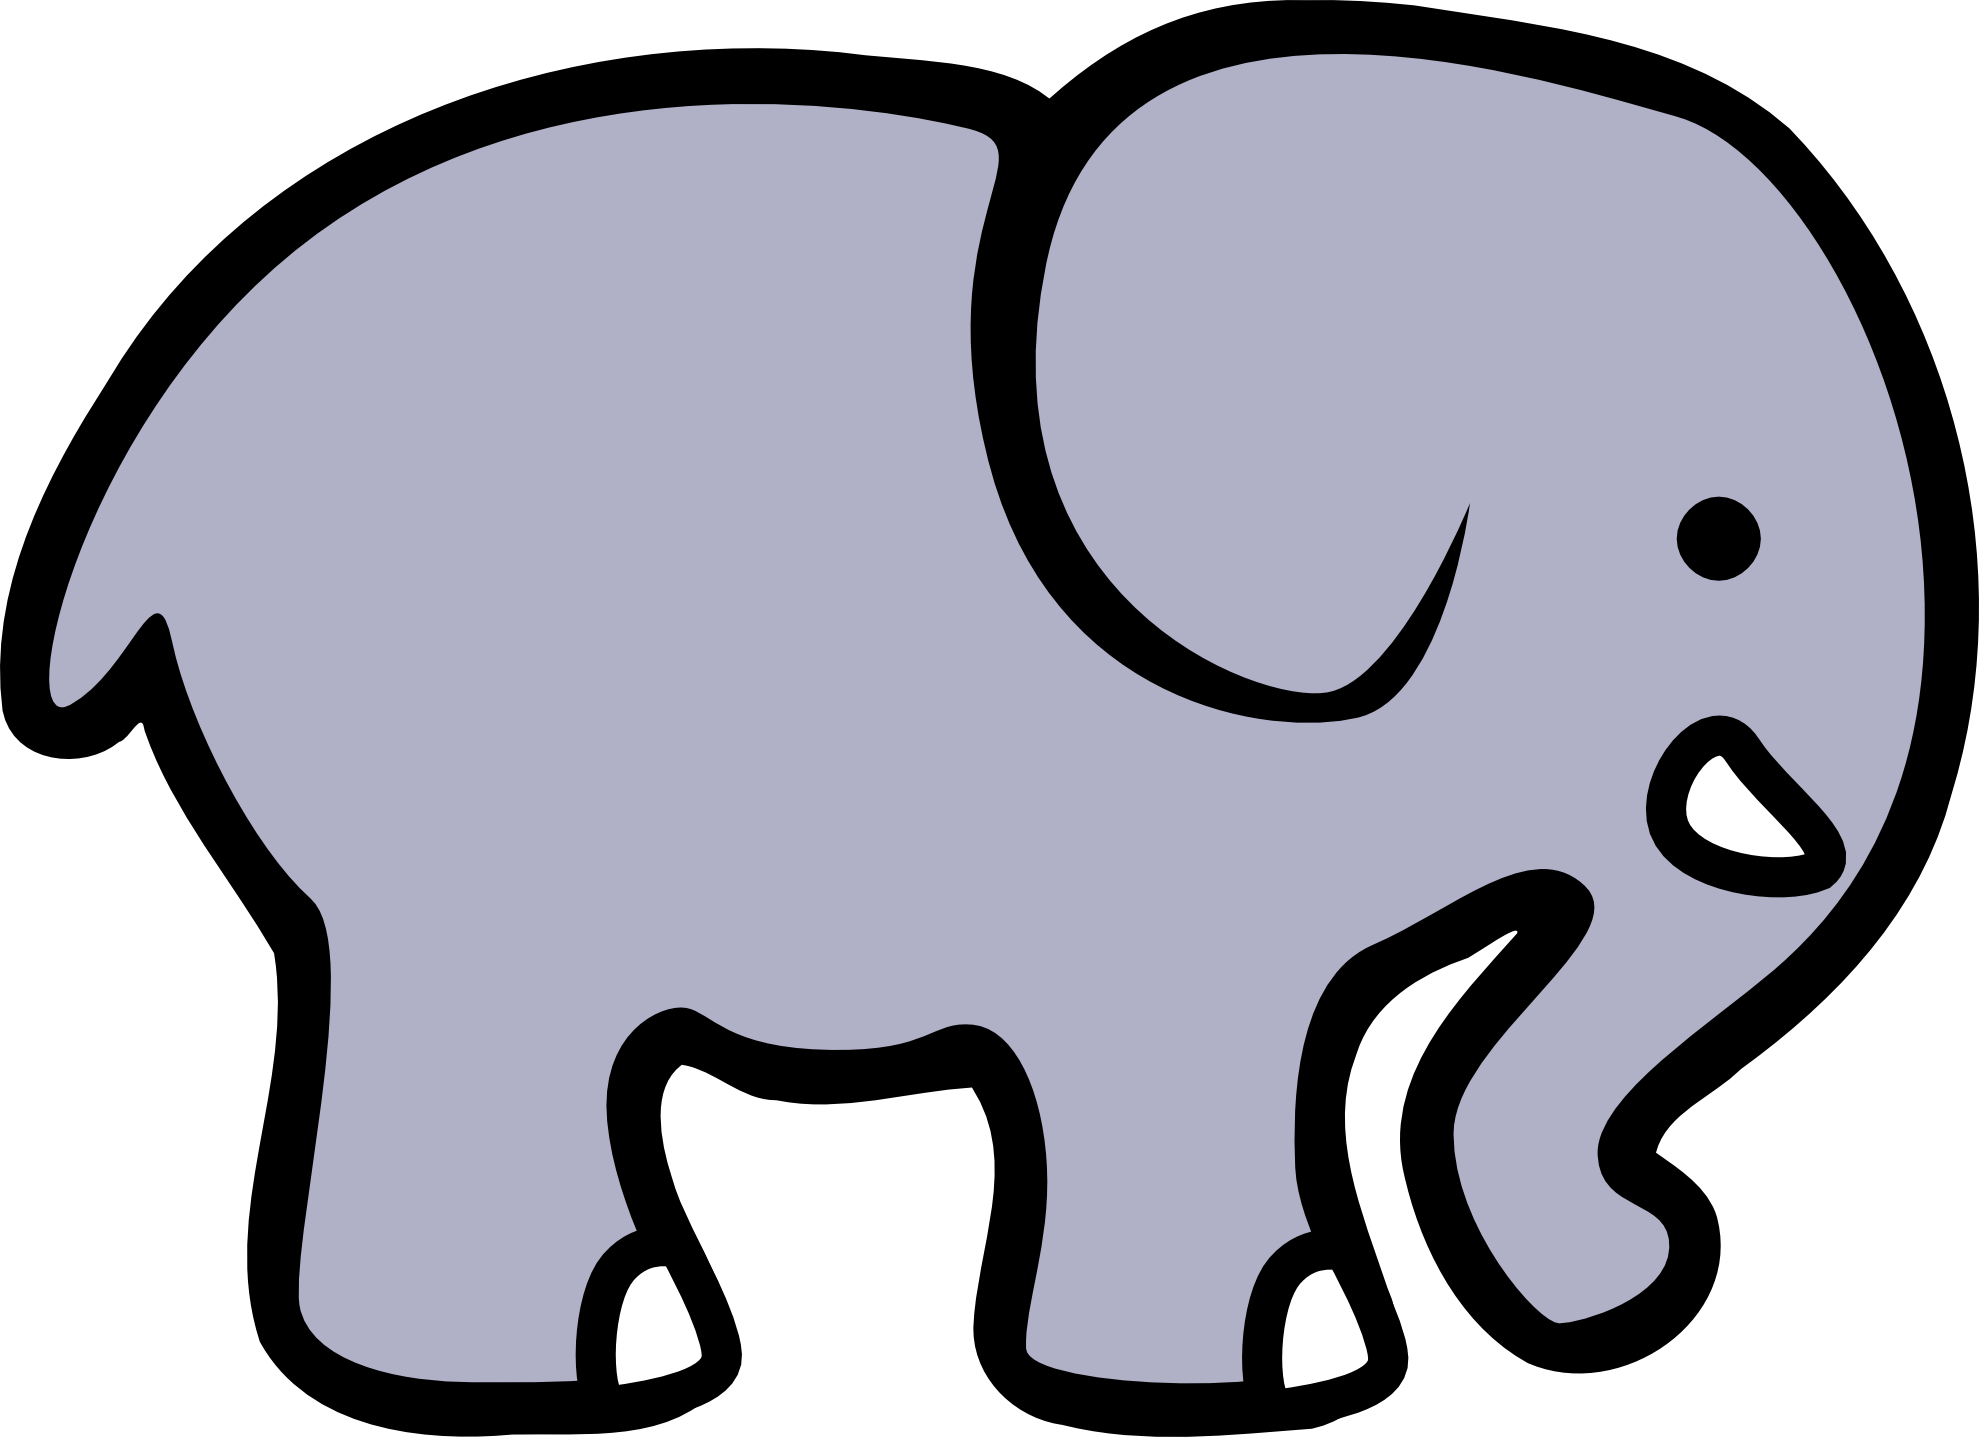 Numbers drawing elephant. Alabama silhouette at getdrawings